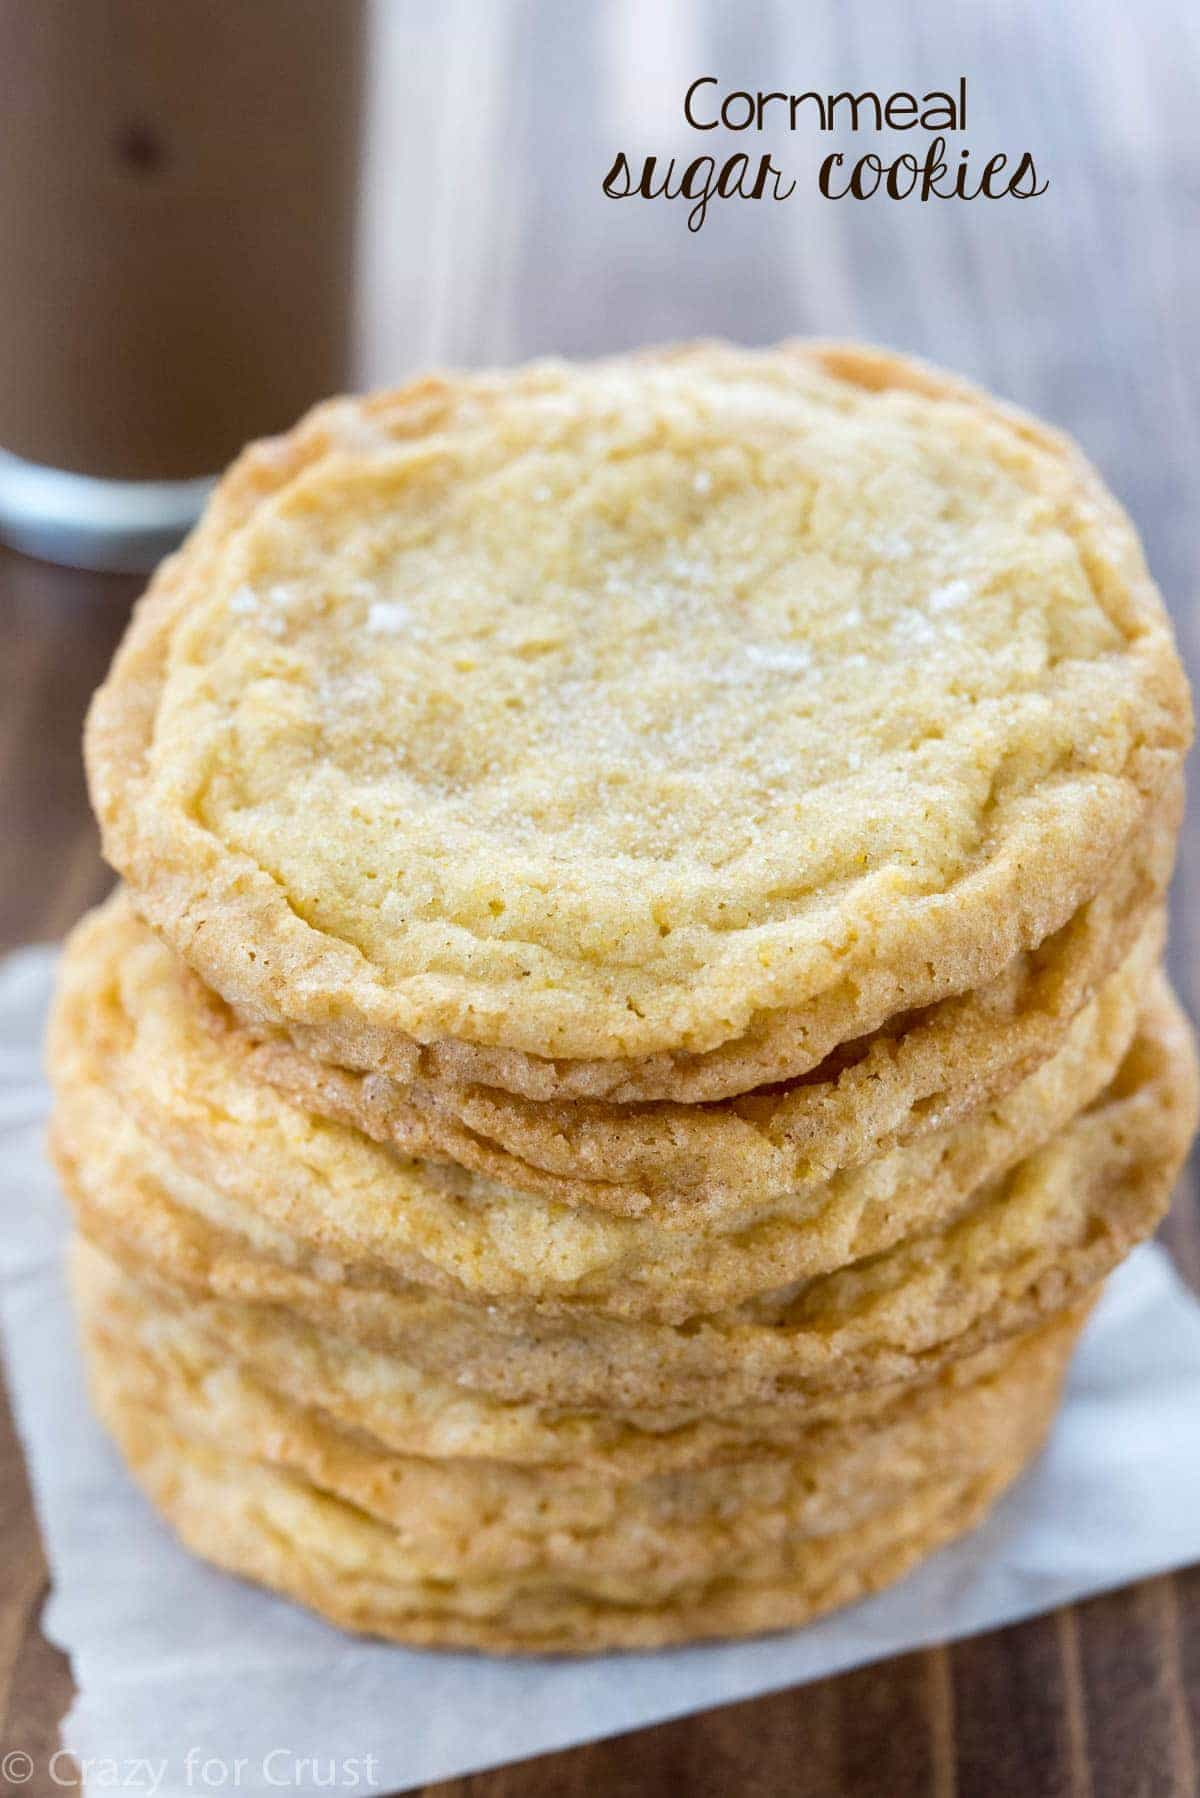 Cornmeal Sugar Cookies - an easy sugar cookie recipe with a little added crunch from cornmeal!